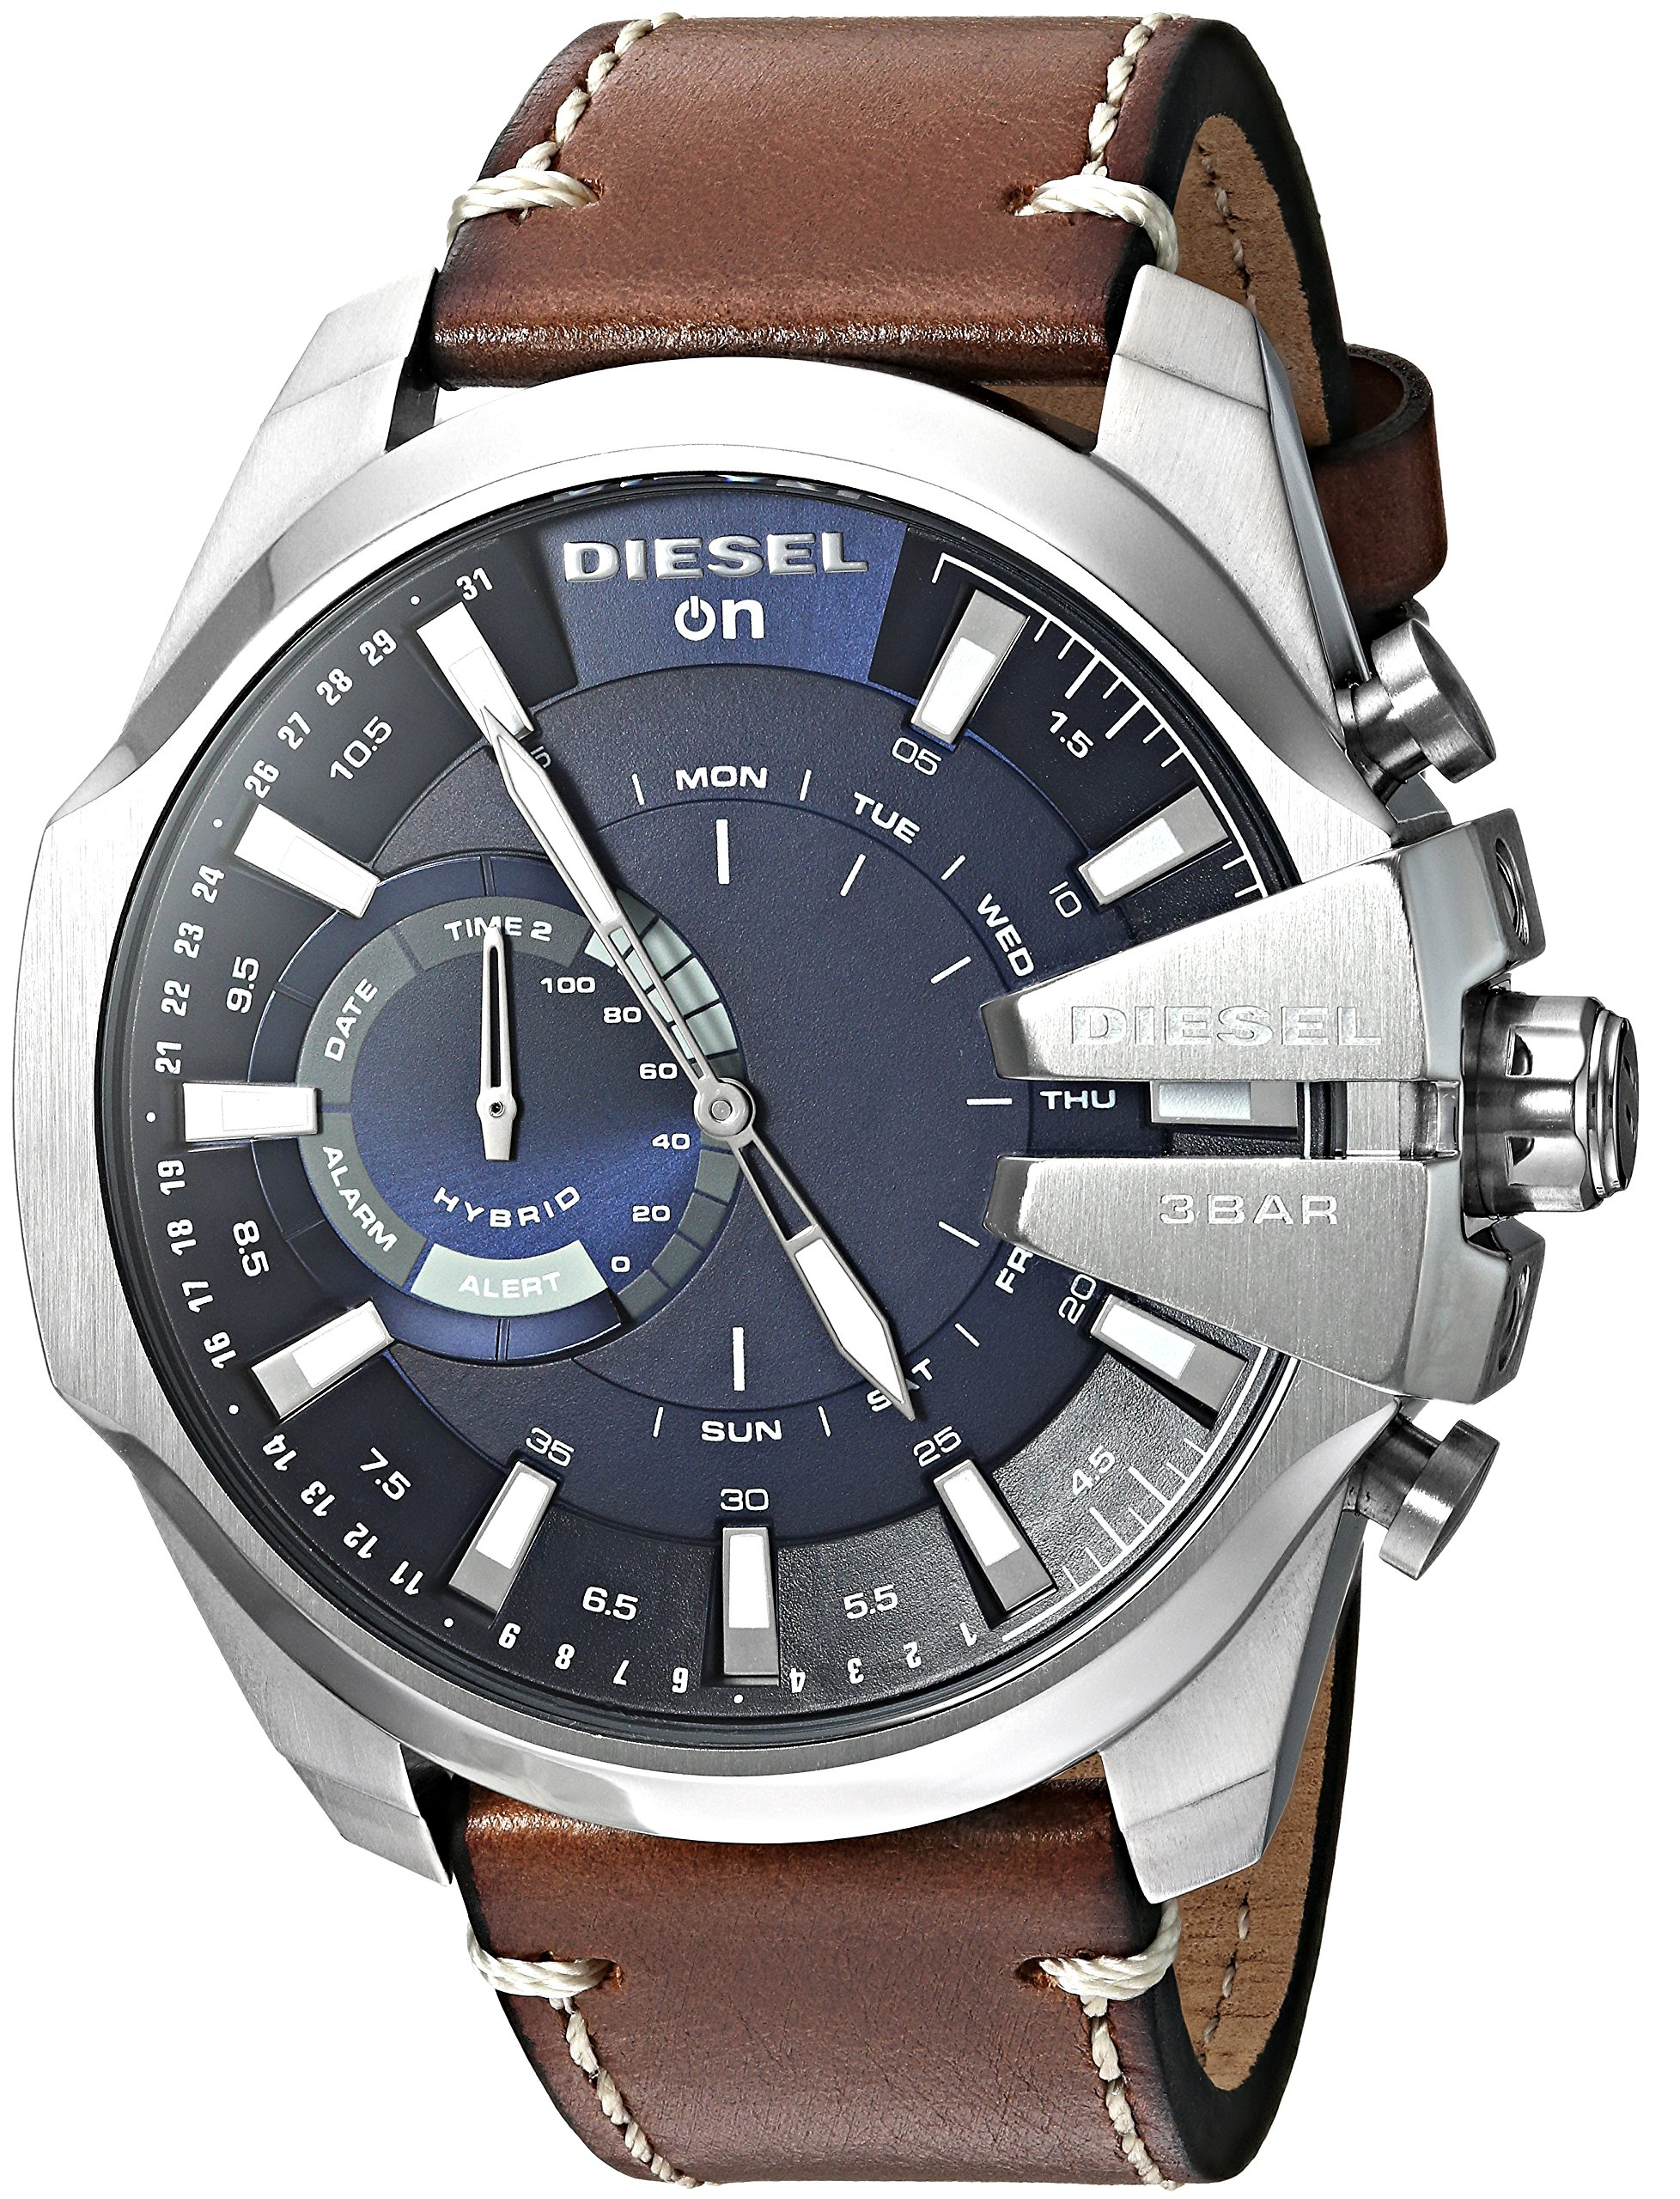 Diesel Men's Stainless Steel Hybrid Watch with Leather Band Strap, Brown, 24 (Model: DZT1009)